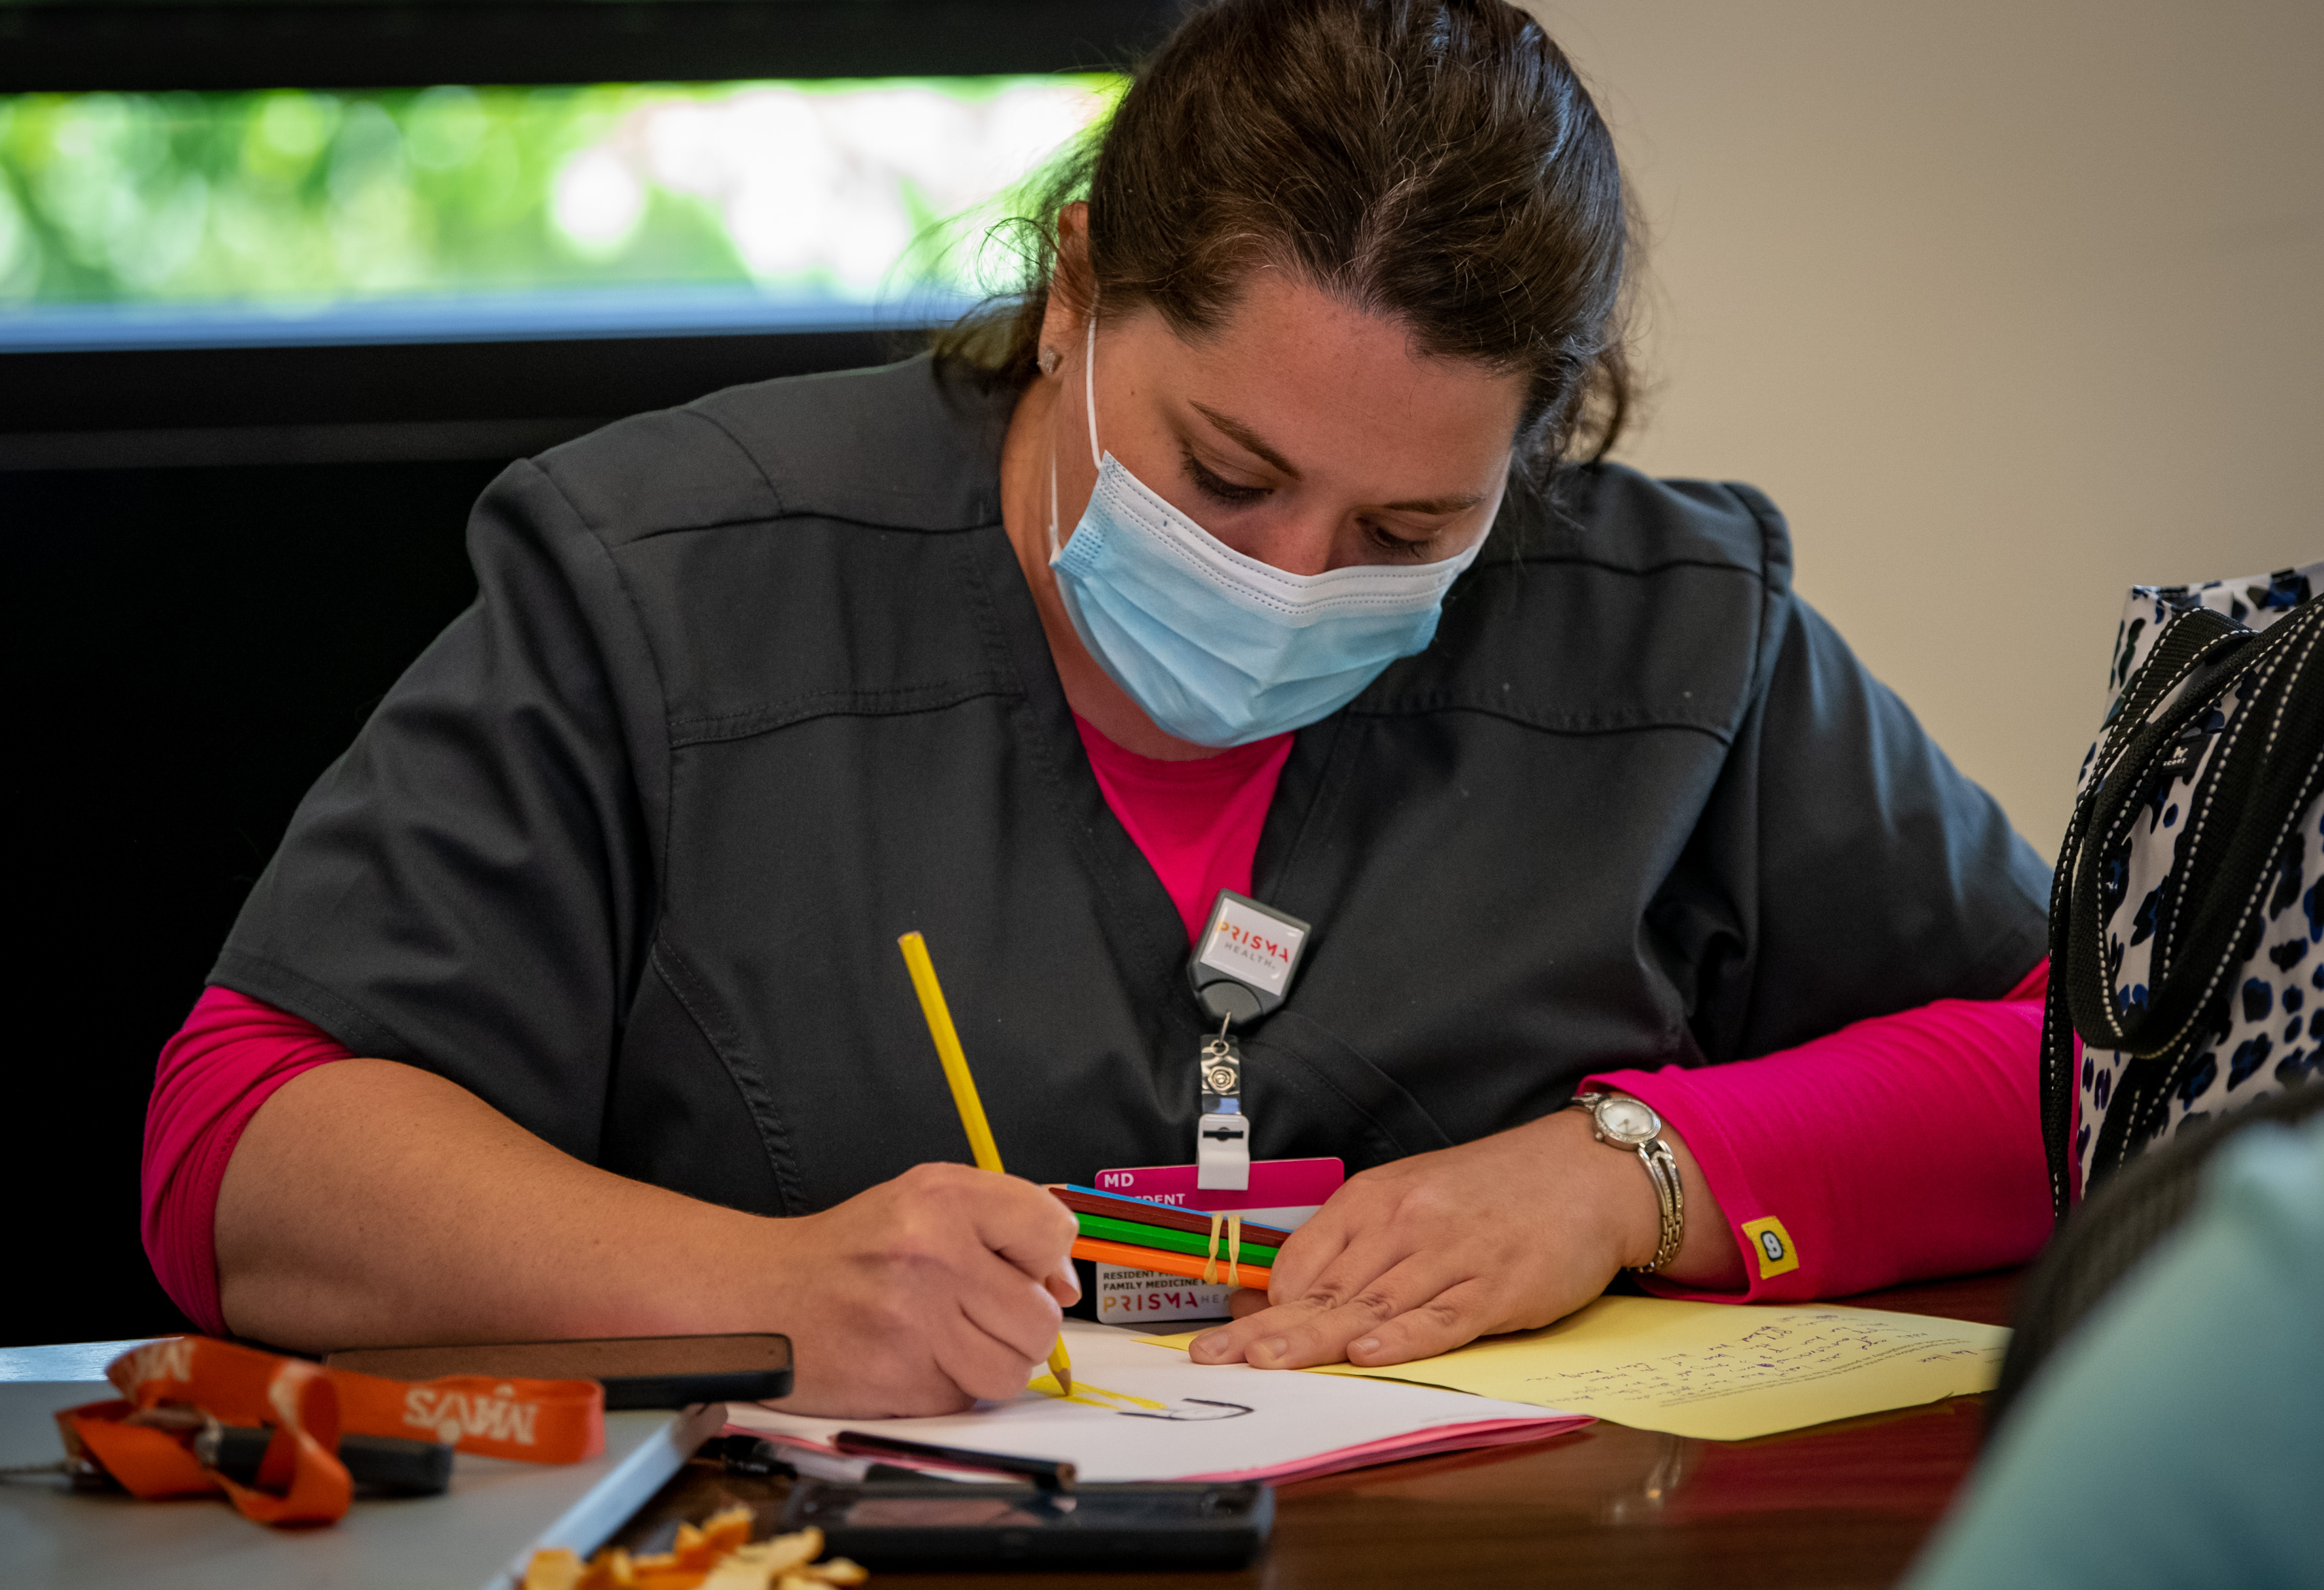 A woman in scrubs and a mask draws with colored pencils.